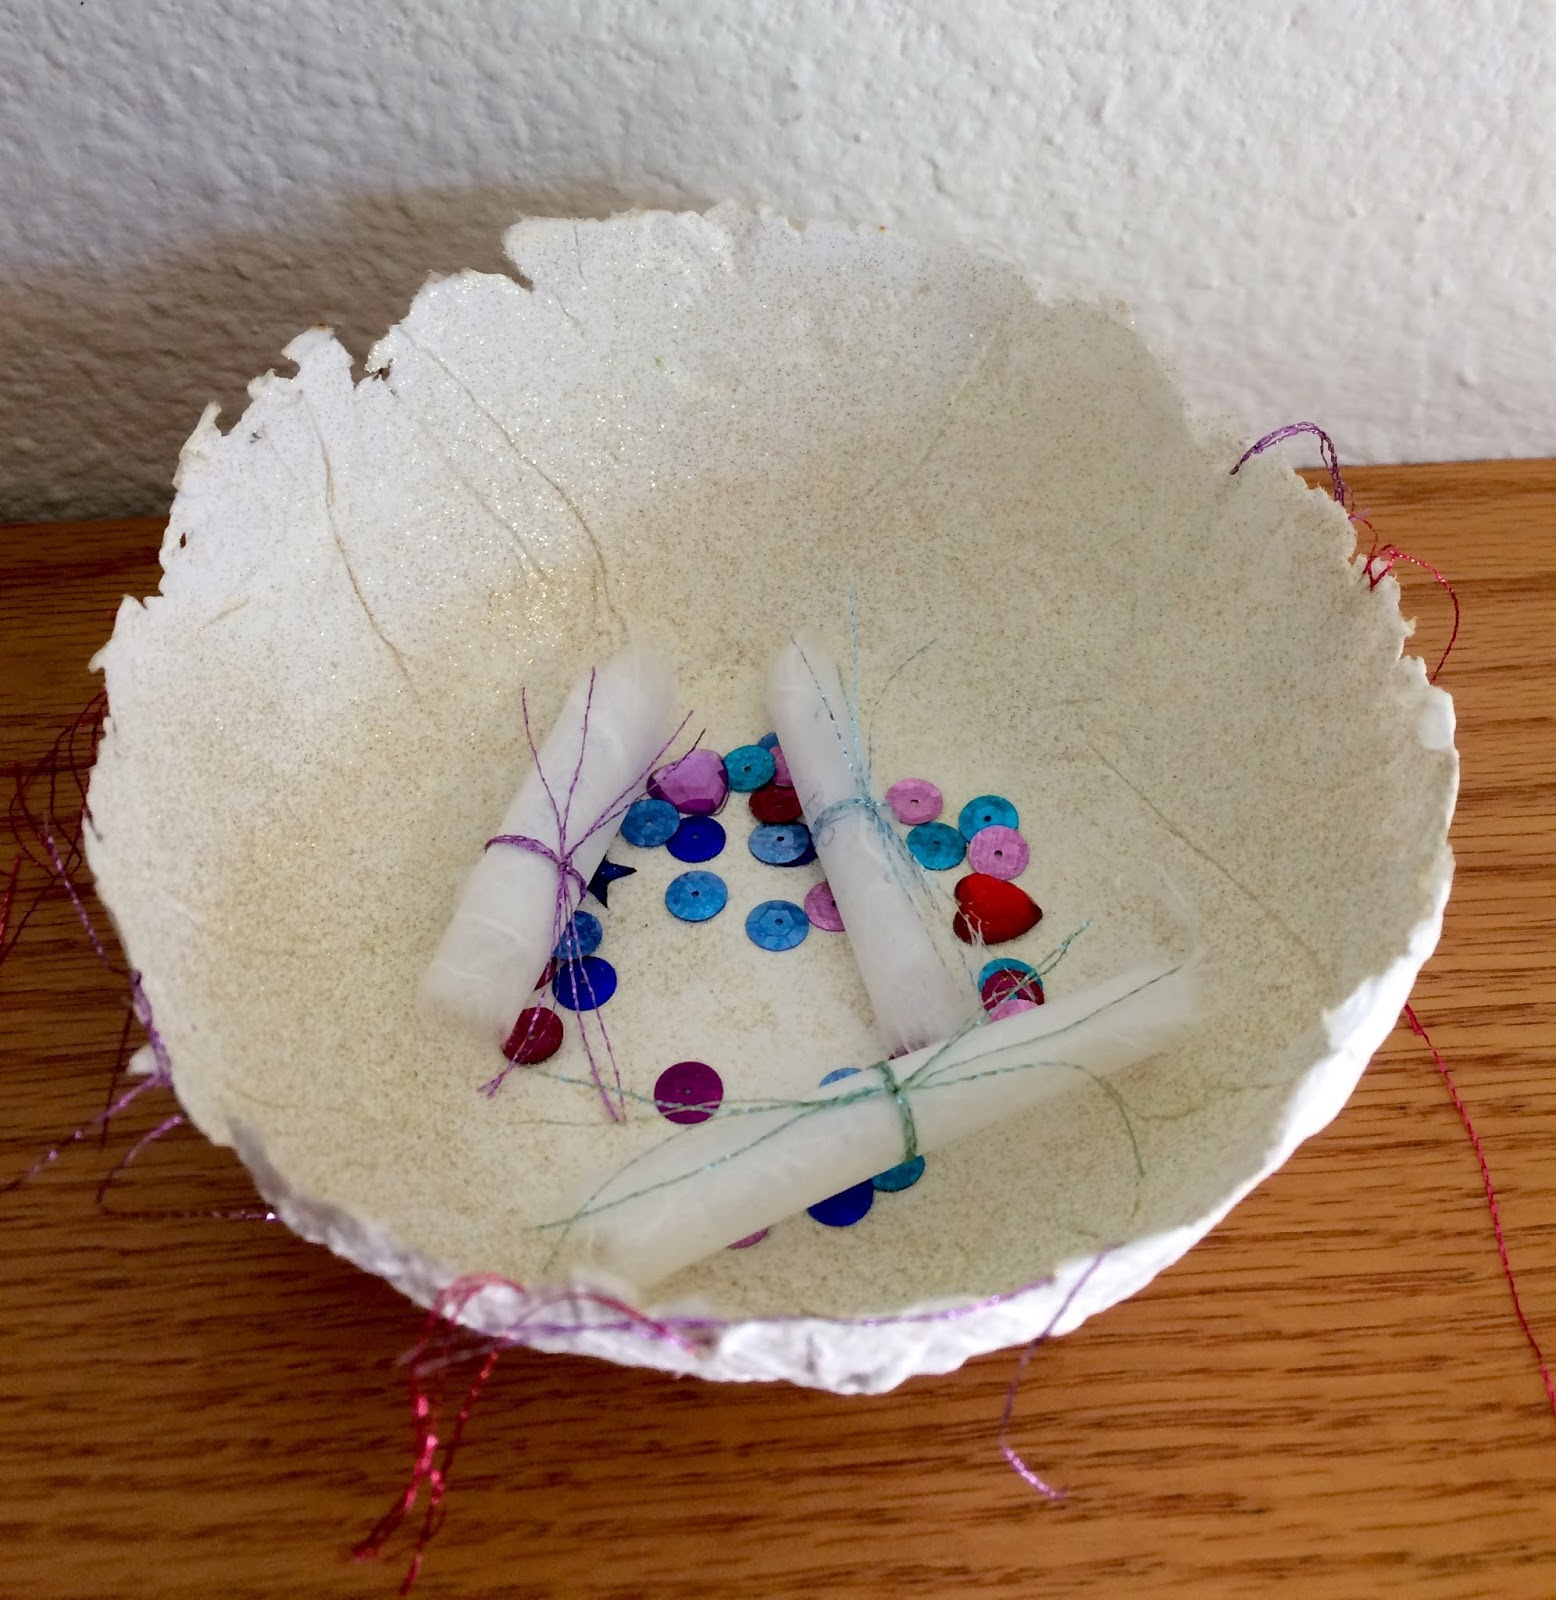 Kathy's Art Project Ideas: Handmade Paper Wish Bowls and